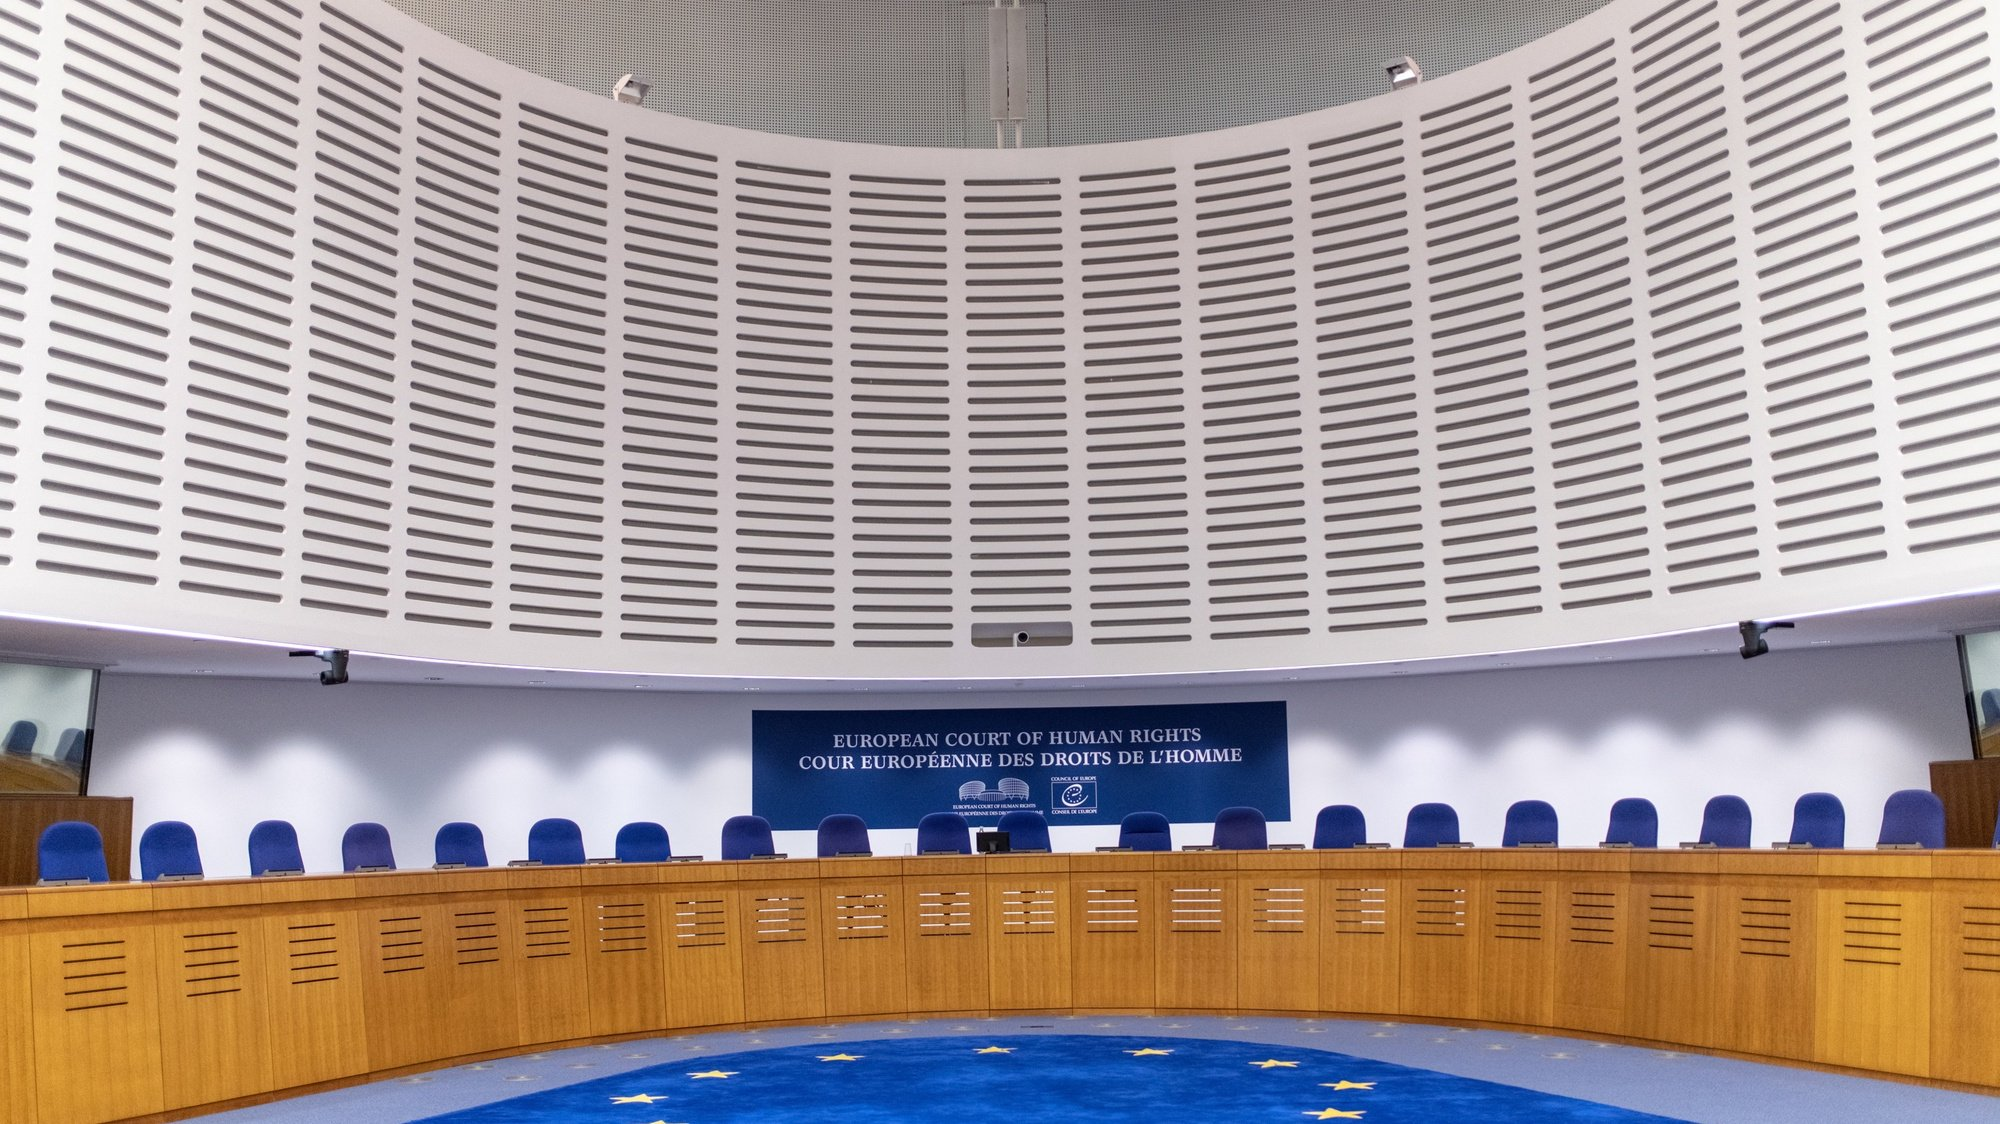 epa07166801 The courtroom in the European Court of Human Rights (ECHR) is seen ahead of the judgment regarding the case of Russian opposition leader Alexei Navalny against Russia at the court in Strasbourg, France, 15 November 2018. The case deals with the arrest of Alexei Navalny on seven occasions at different public gatherings, and his subsequent prosecution for administrative offences.  EPA/PATRICK SEEGER